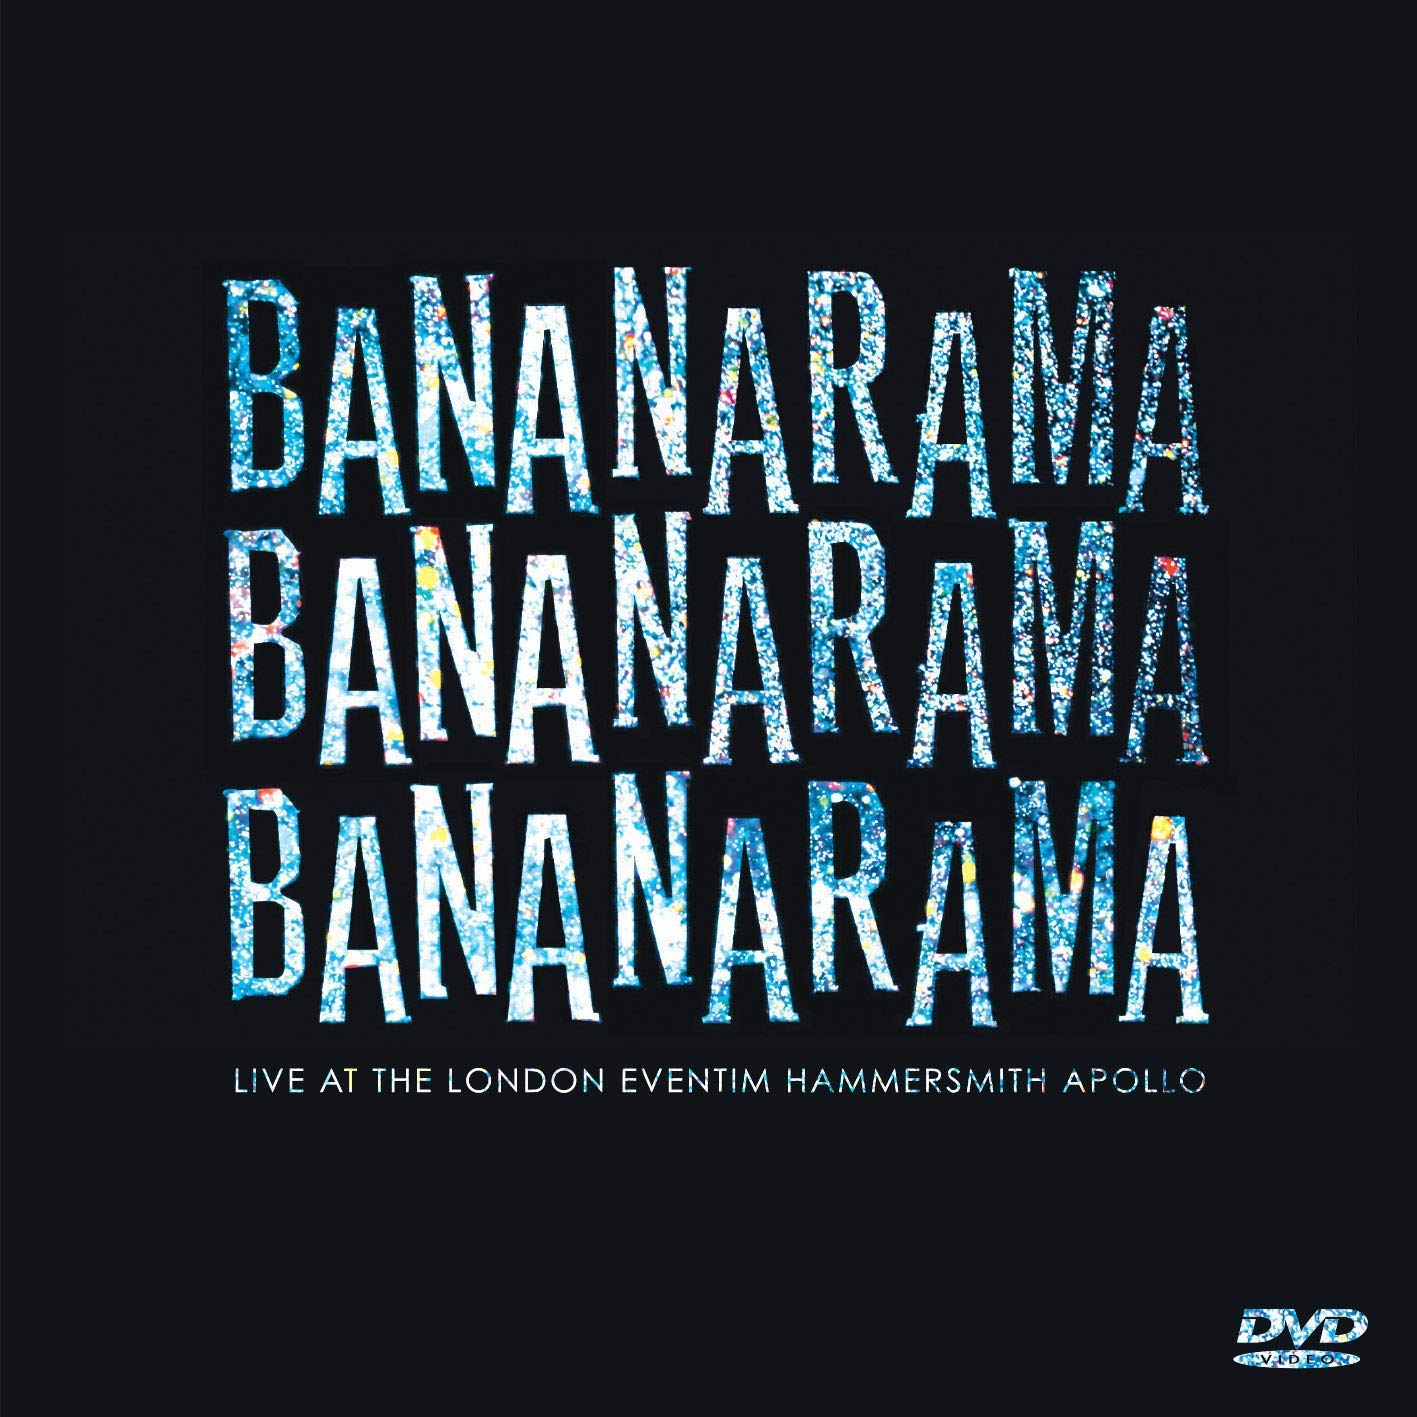 CD : Bananarama - Live At The London Eventim Hammersmith Apollo (With DVD, United Kingdom - Import, NTSC Region 0, 2PC)